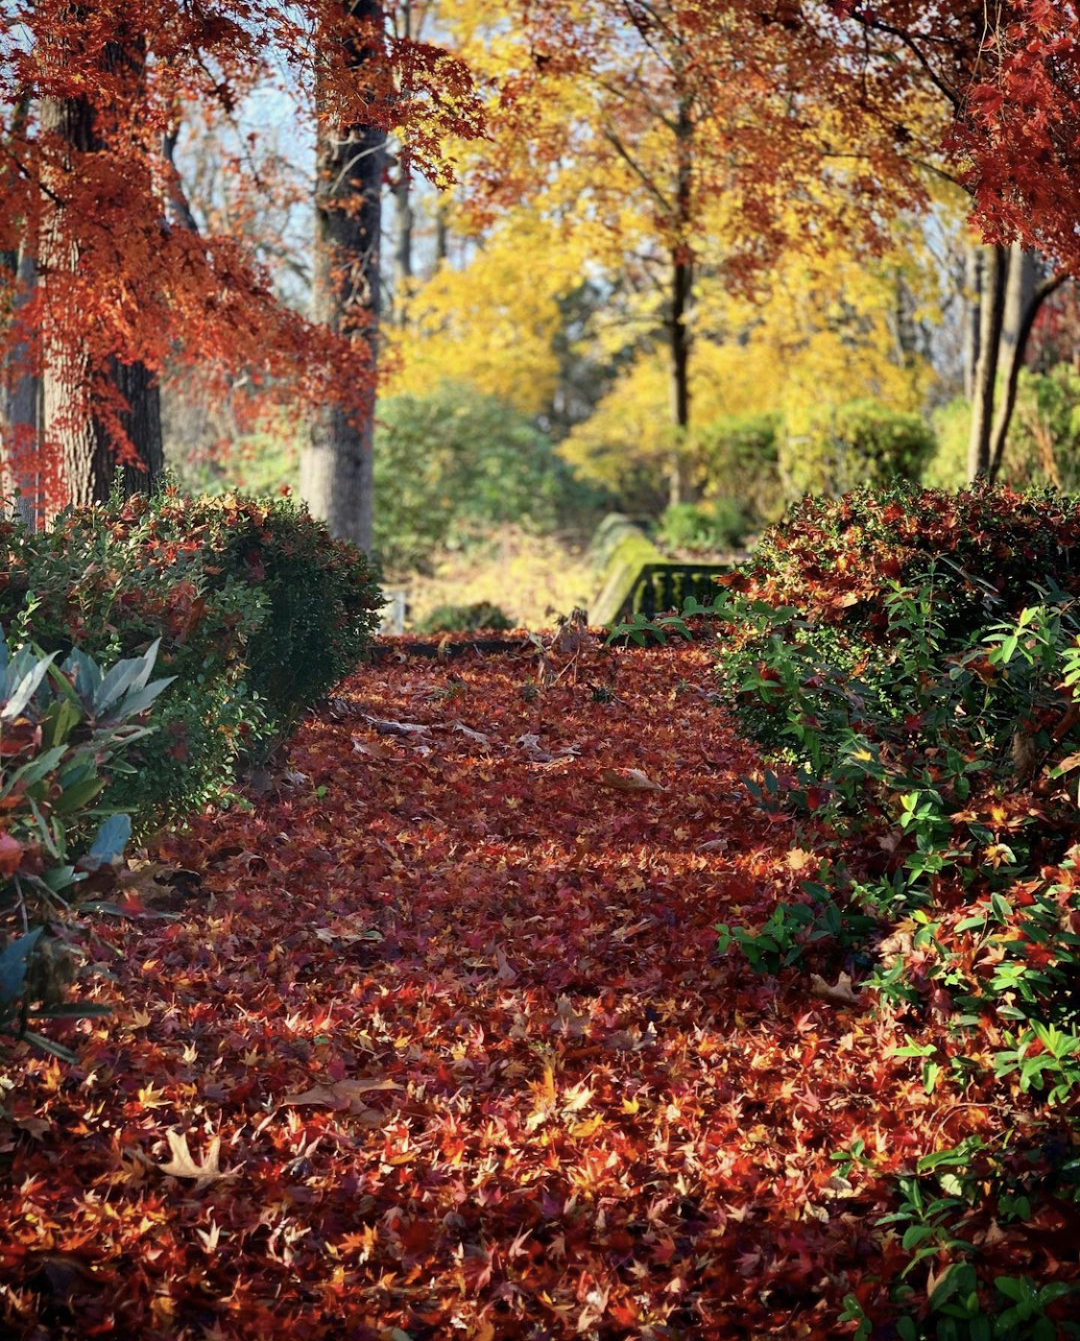 A pathway covered with fallen red leaves